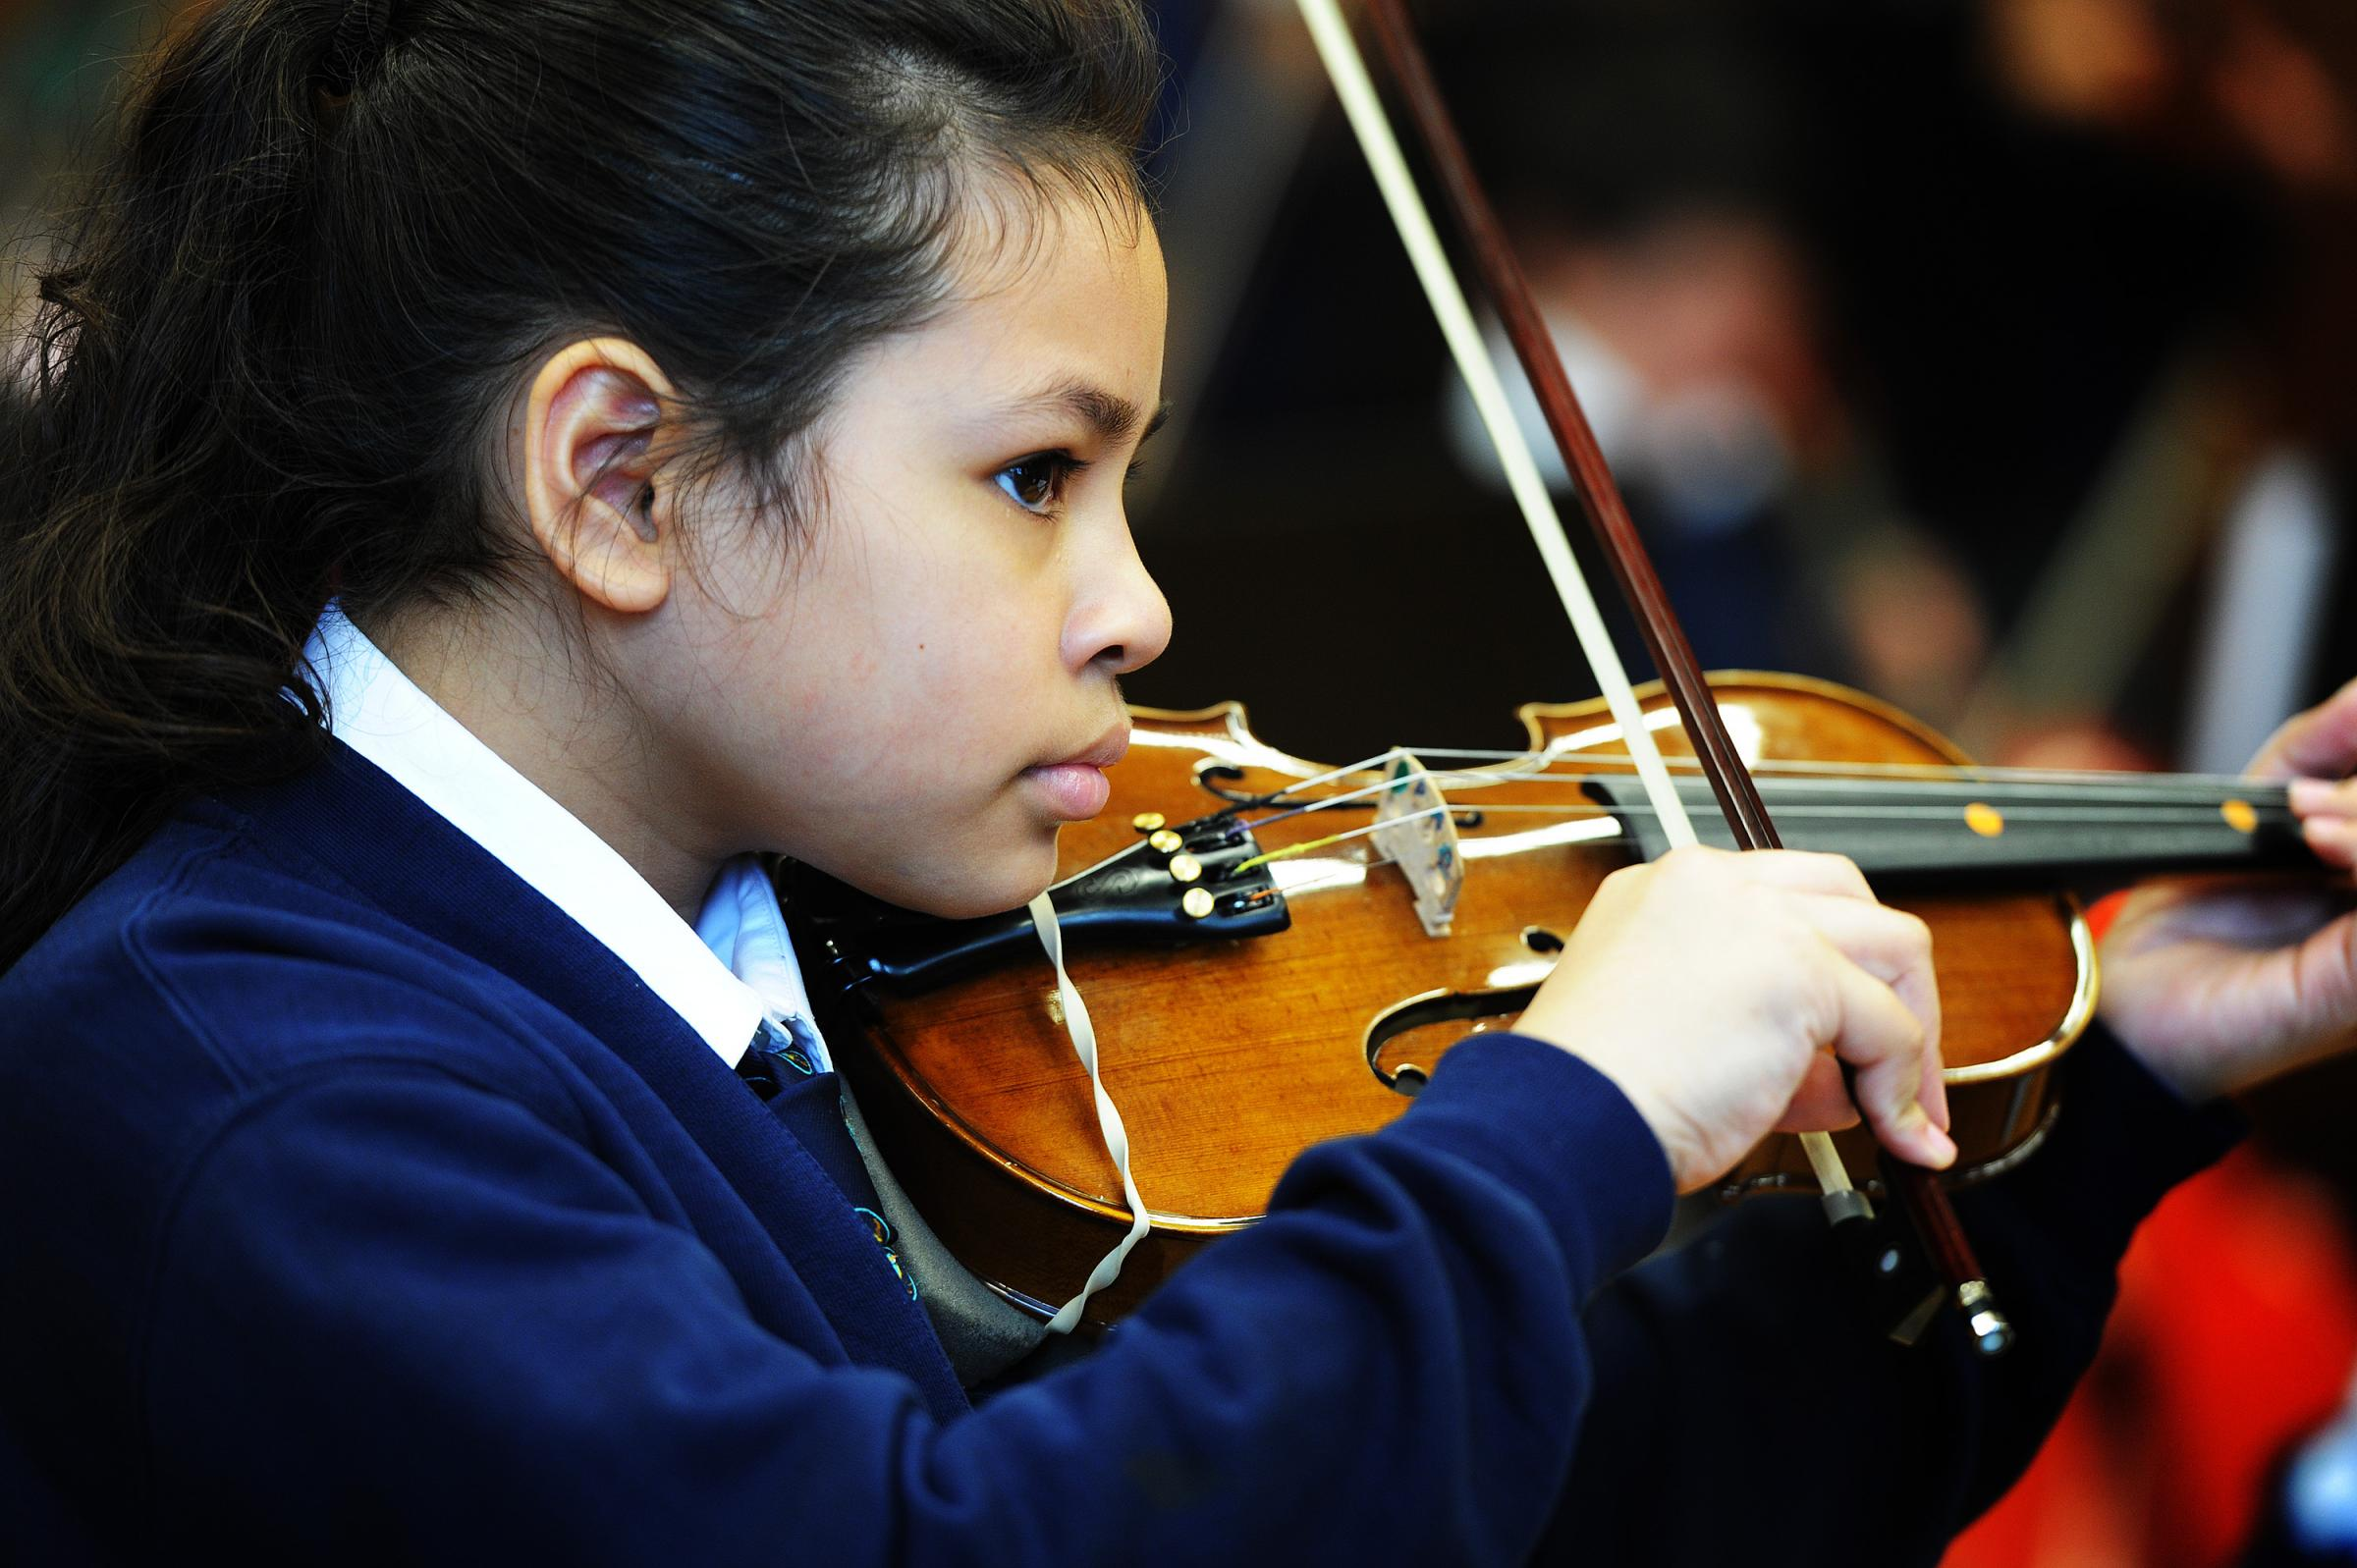 Research shows studying a musical instrument benefits wider learning